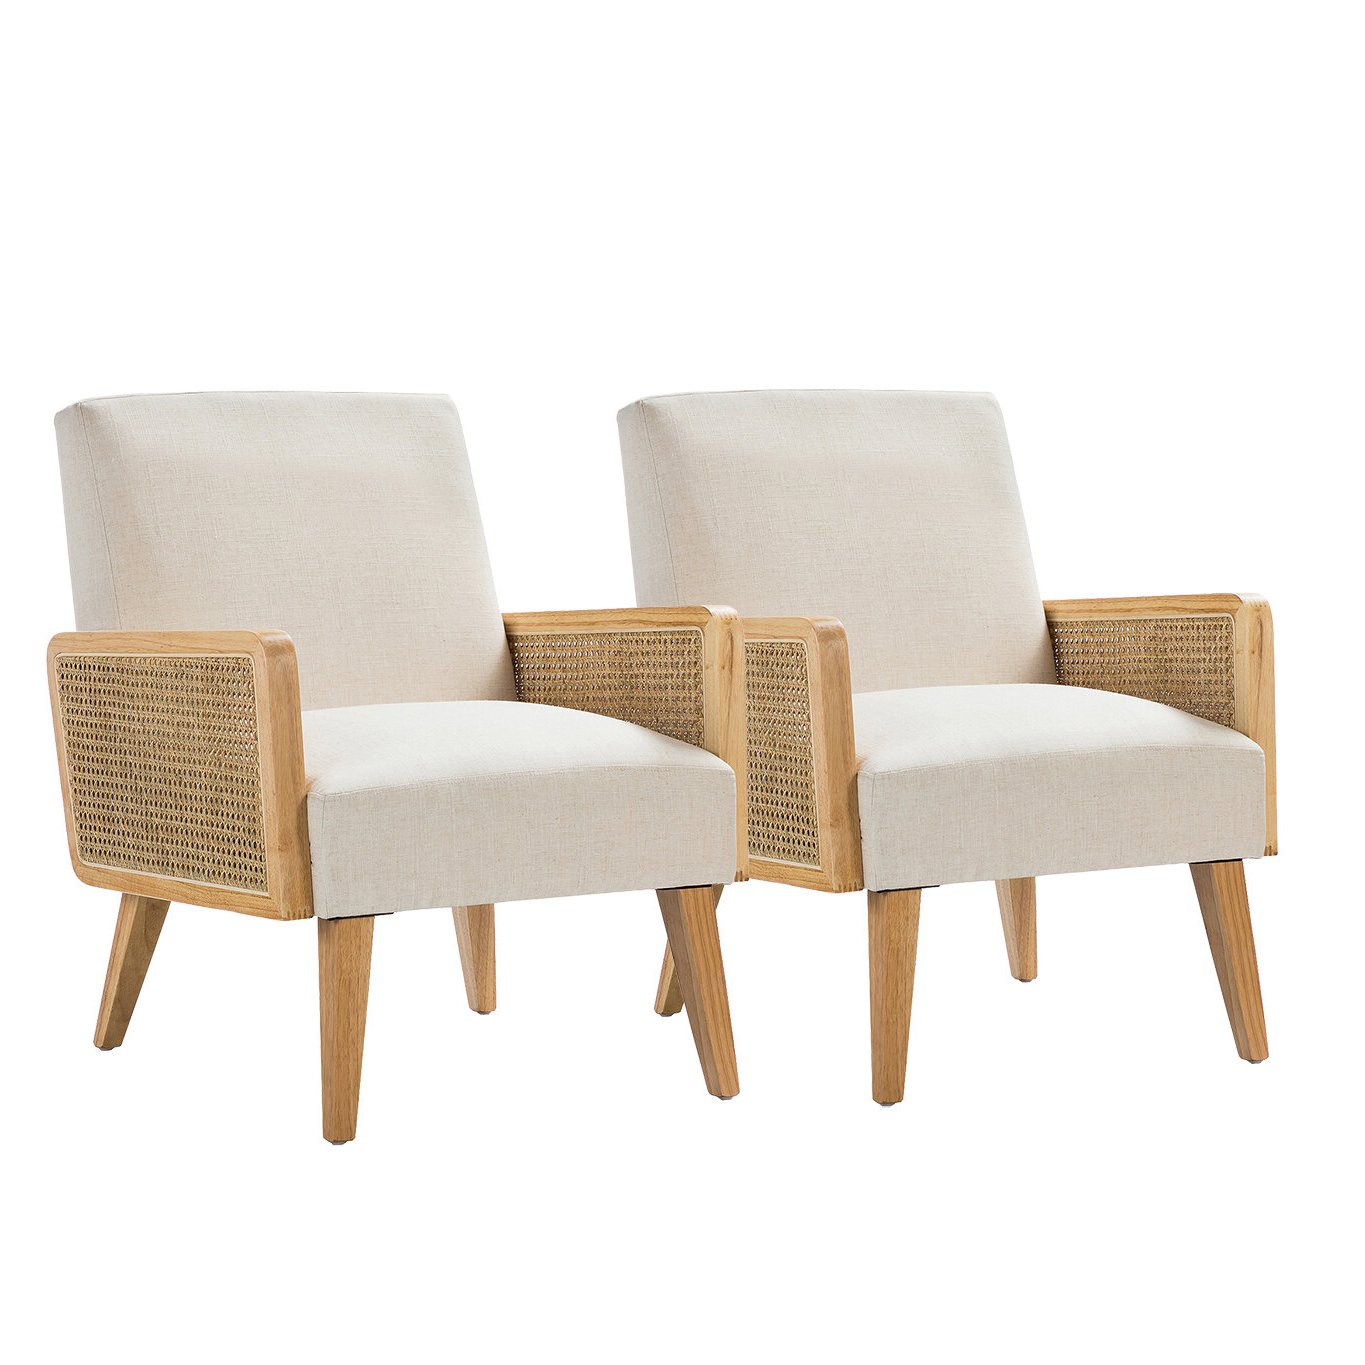 Preferred Arm Modern & Contemporary Accent Chairs You'll Love In 2021 Pertaining To Ragsdale Armchairs (View 9 of 20)